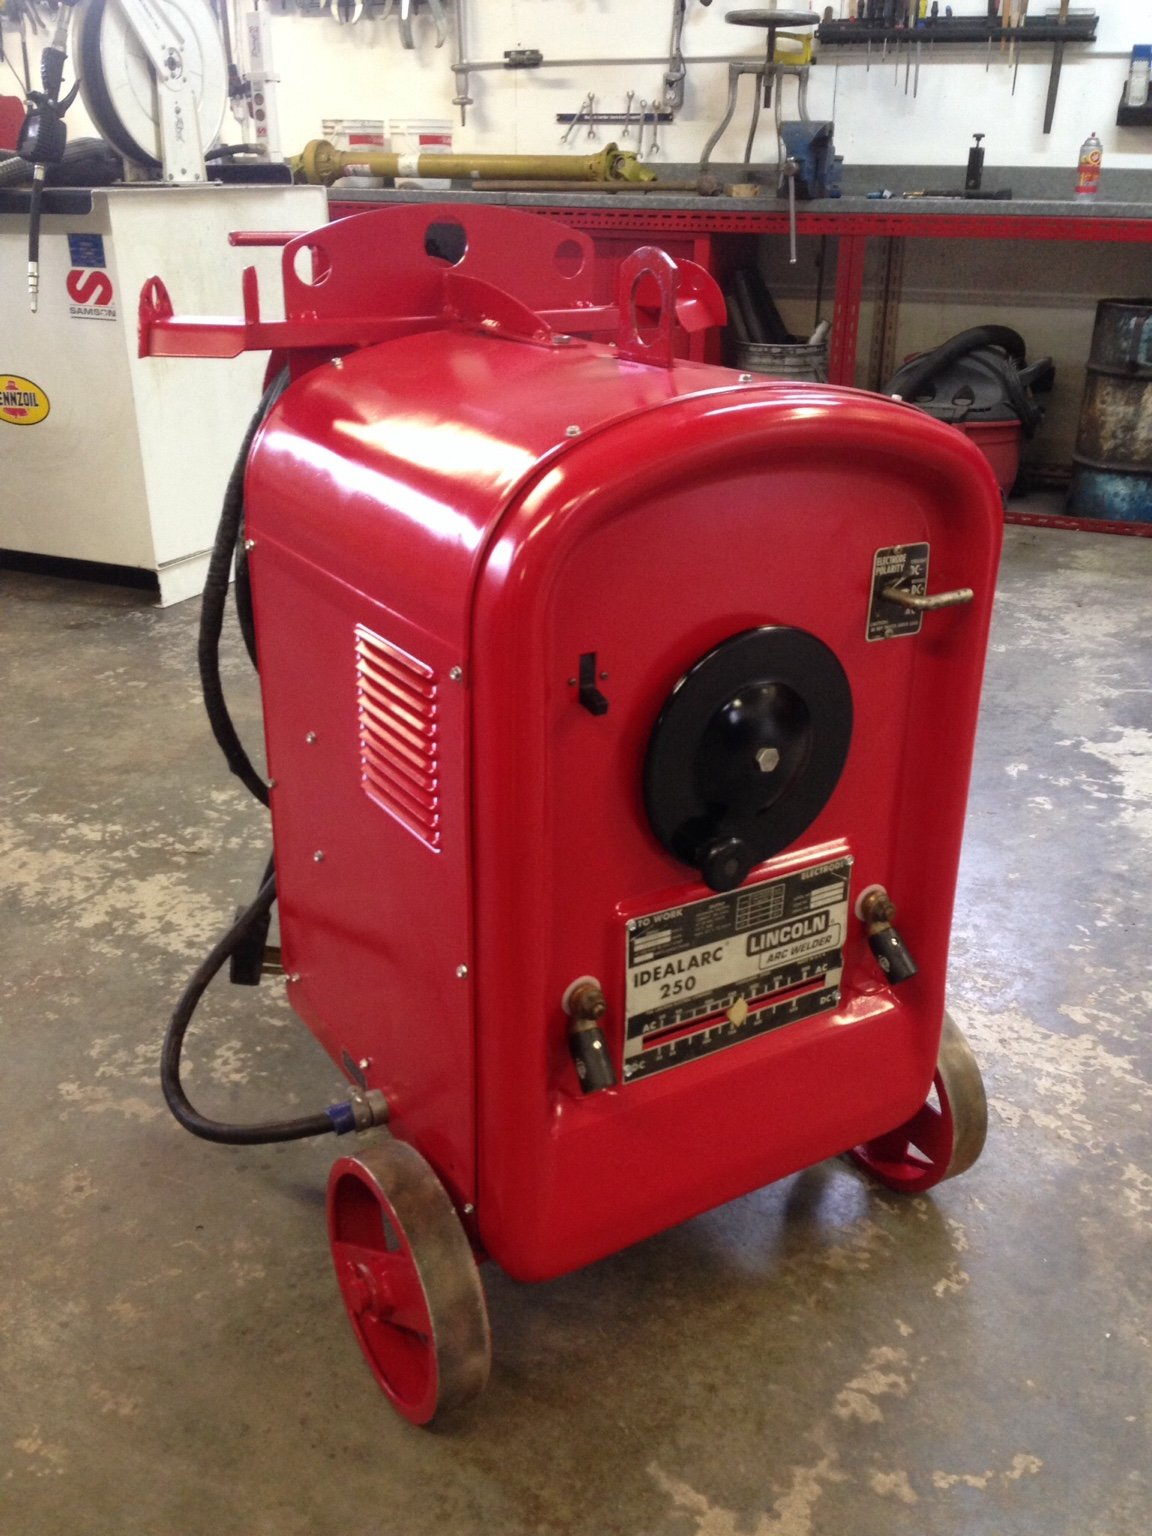 Oldest welder you guys are still using??? [Archive] - Page 2 - WeldingWeb™  - Welding forum for pros and enthusiasts